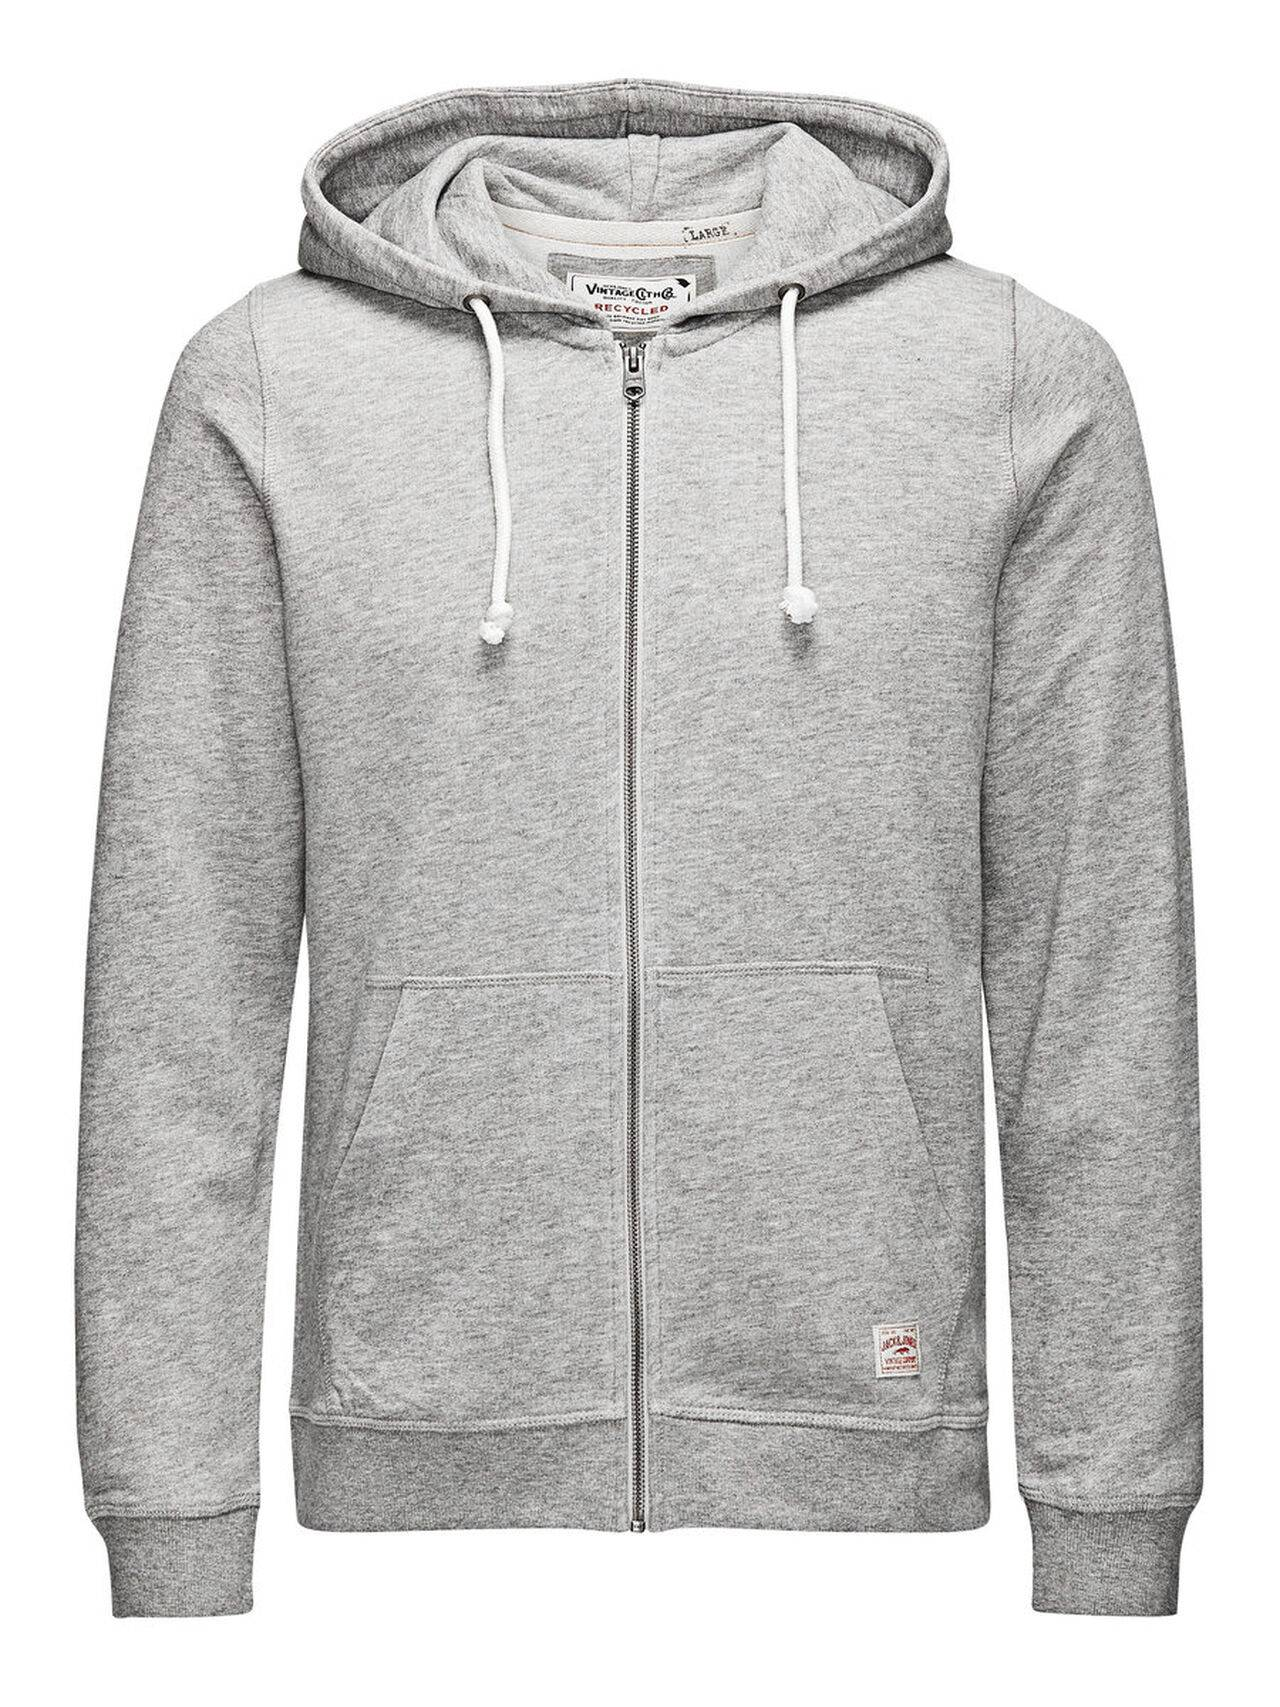 Jack & Jones Hooded Zip Through Sweatshirt LightGreyMelange